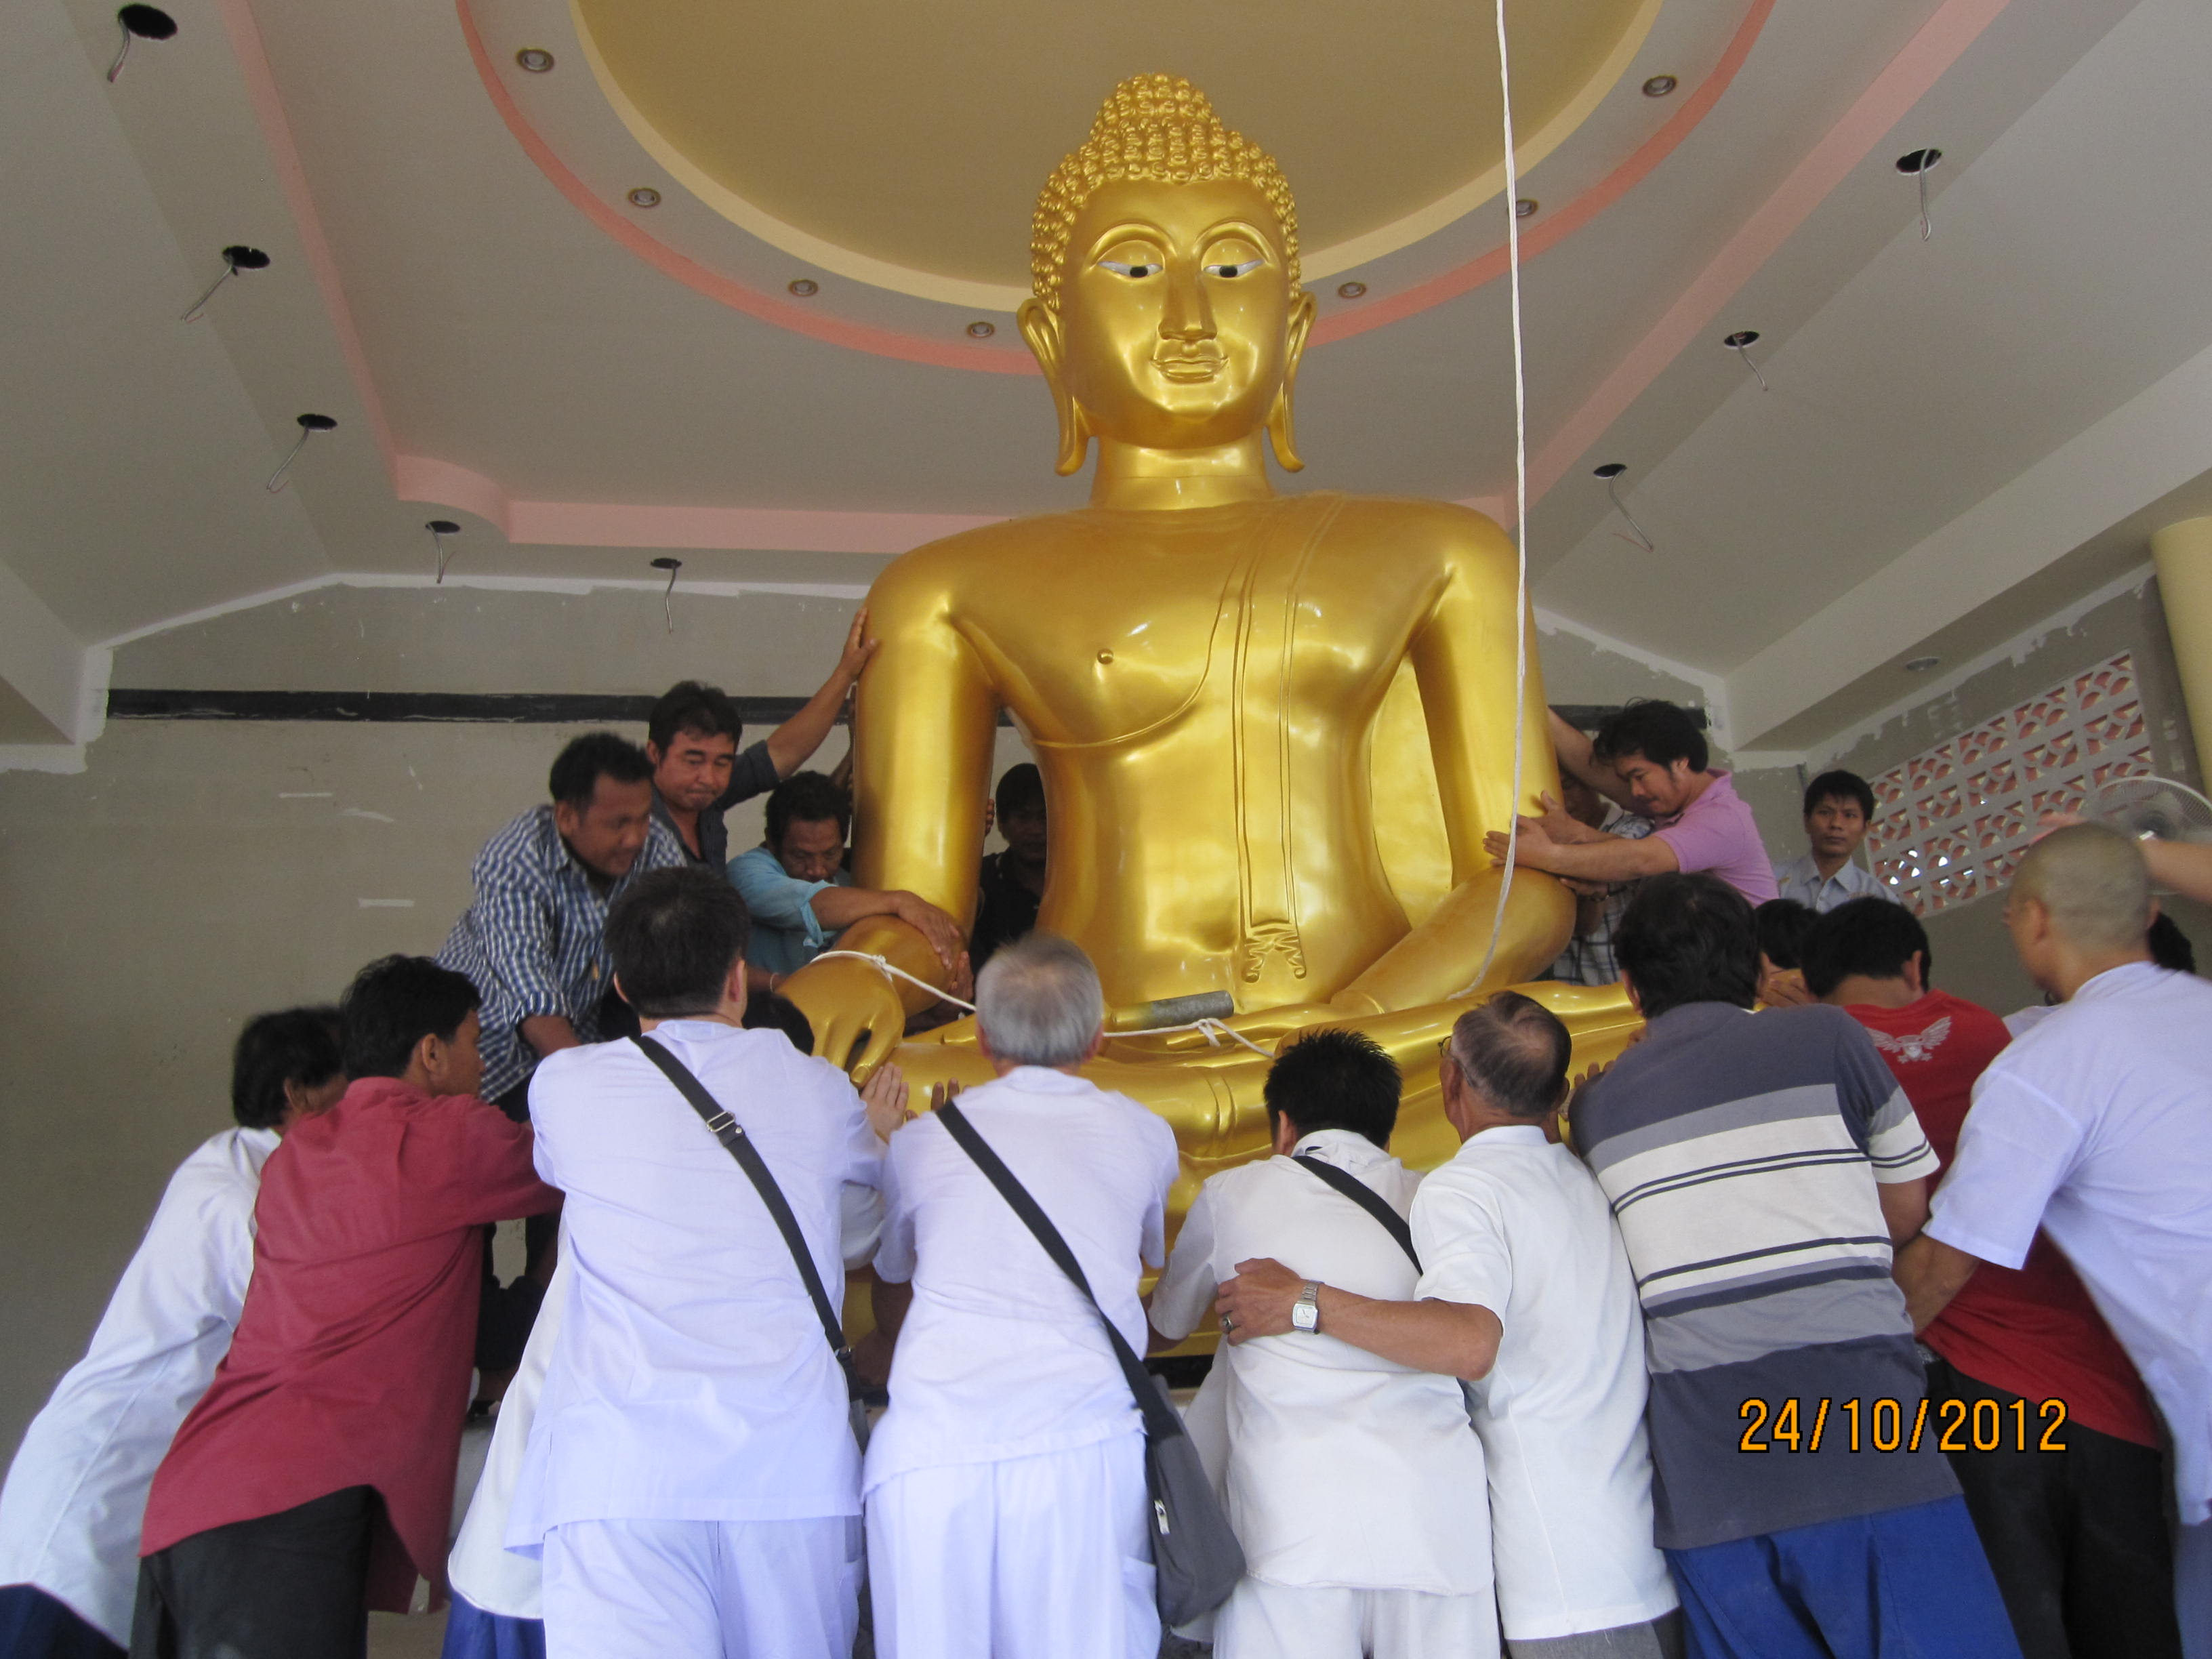 Male followers helping to move the Buddha statue to the Shrine Hall